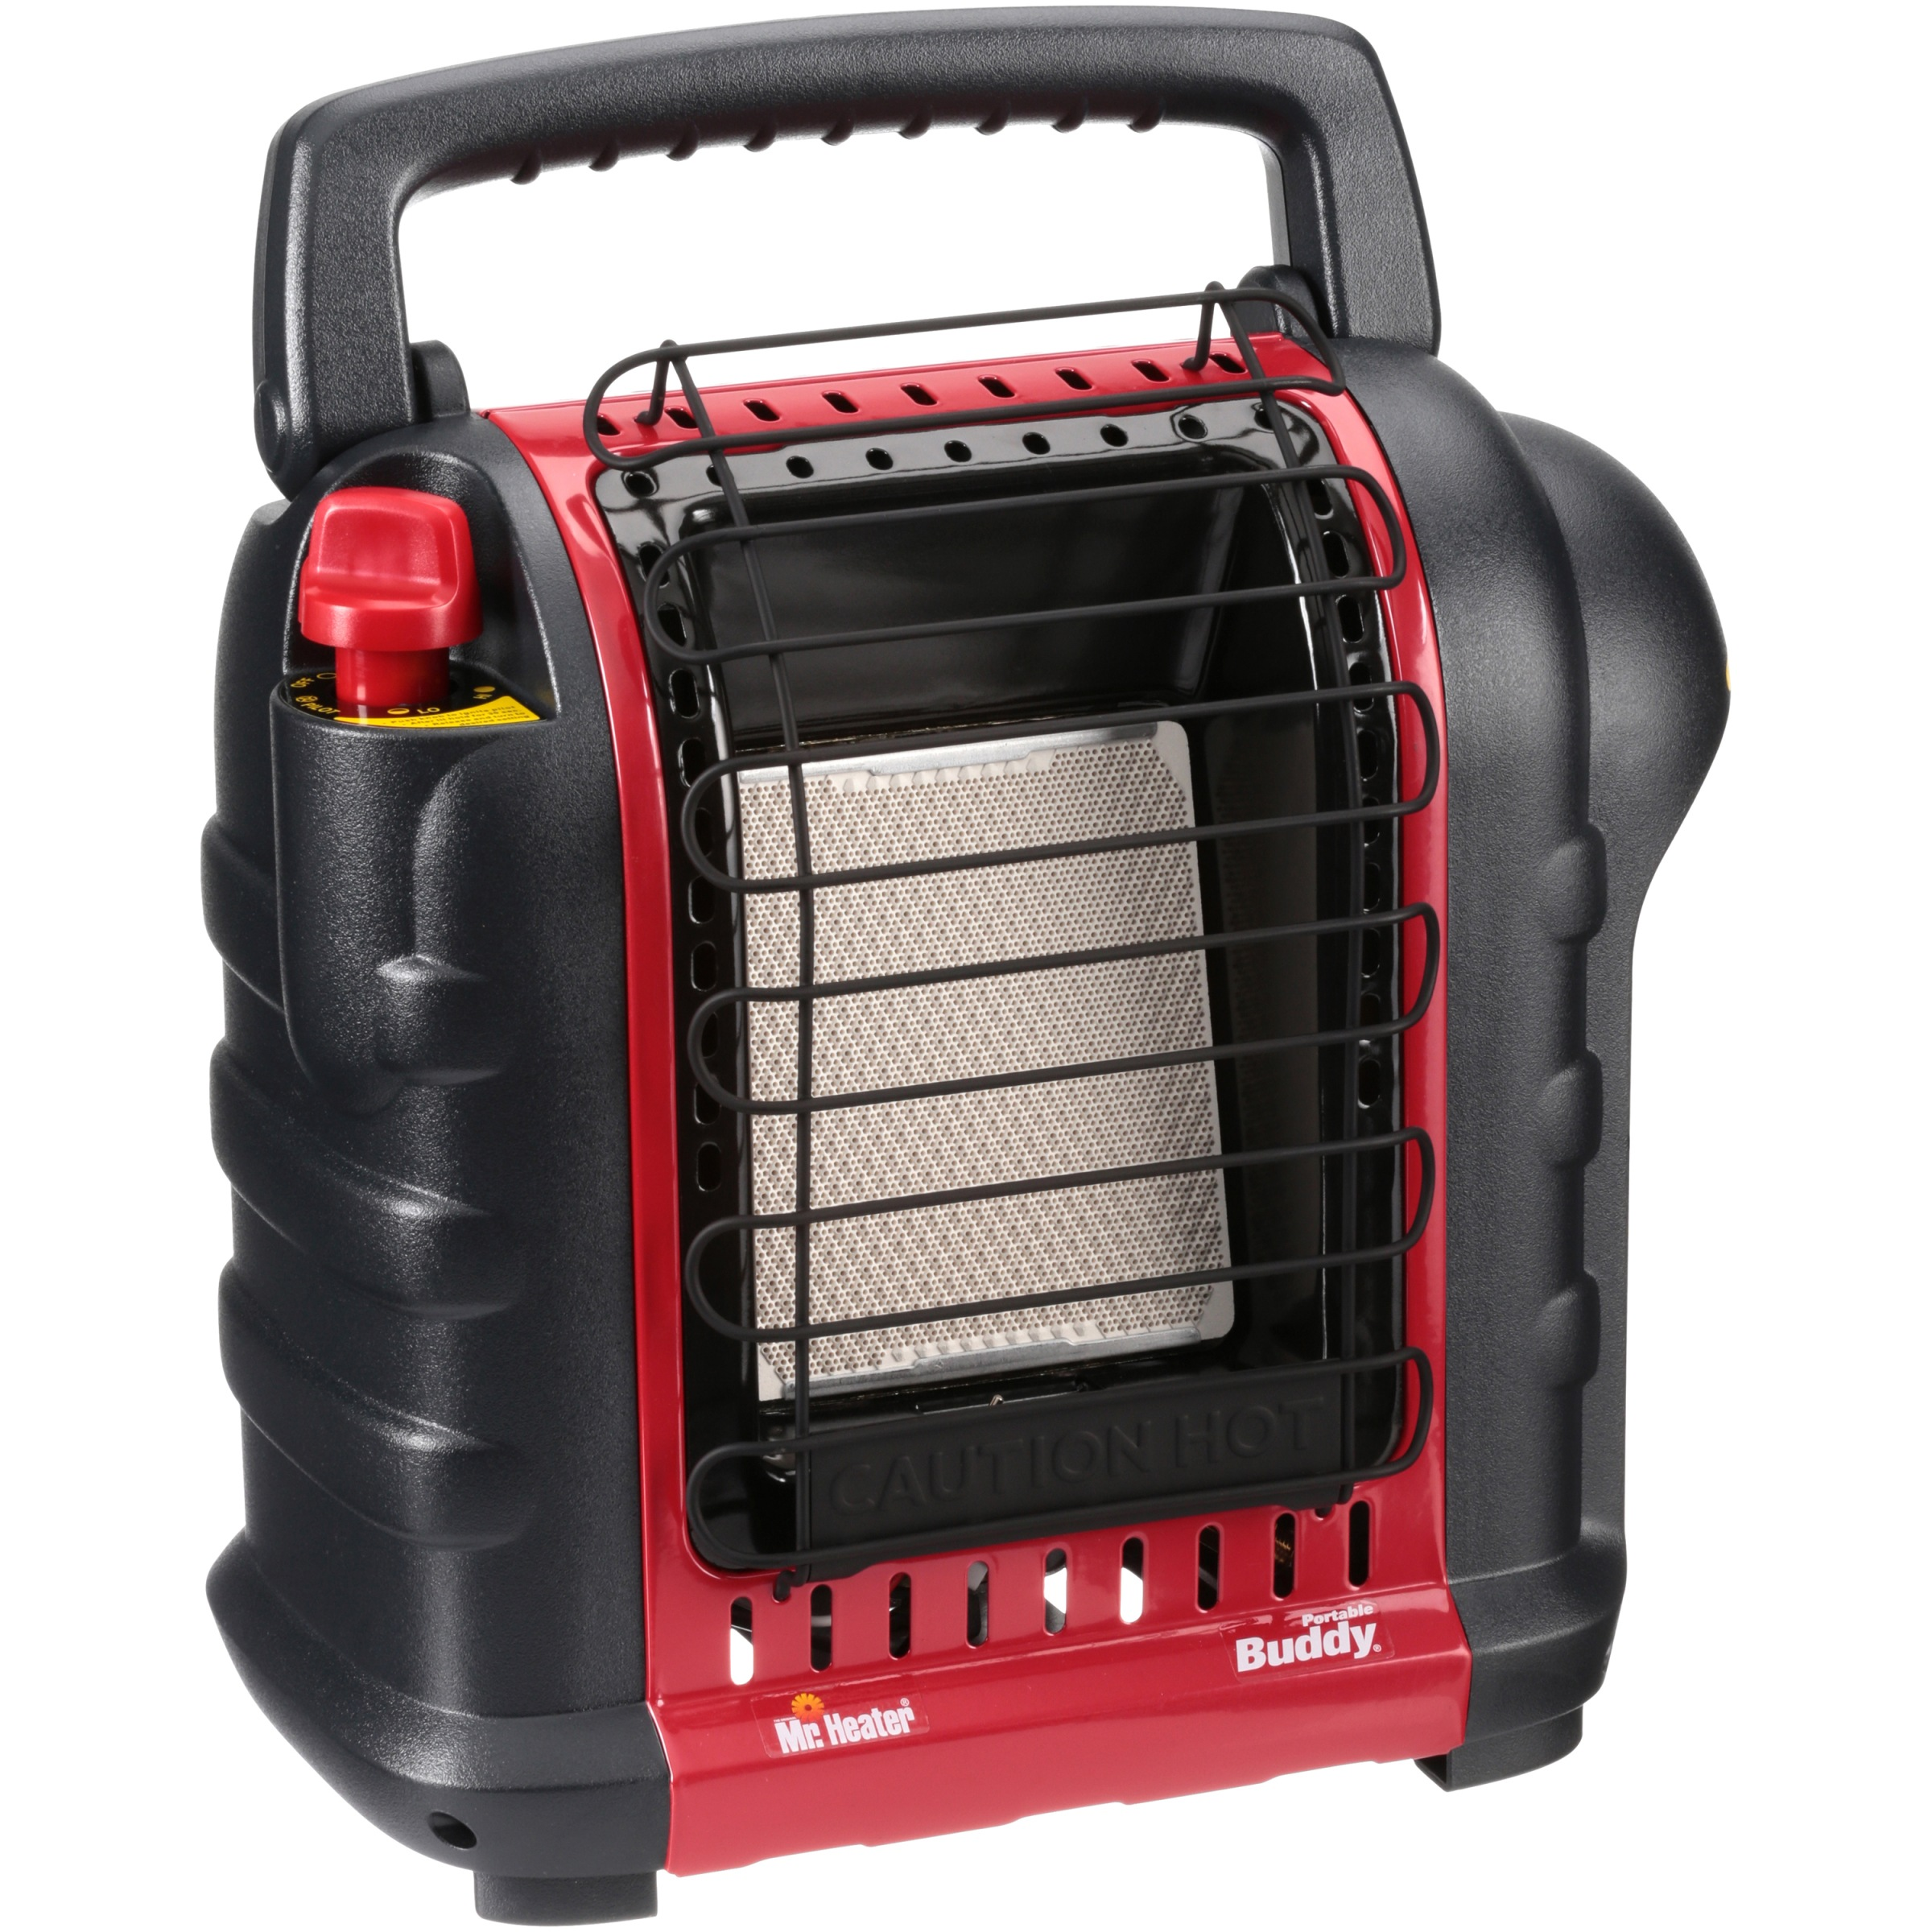 Mr. Heater® Portable Buddy® Indoor Safe Propane Heater Box